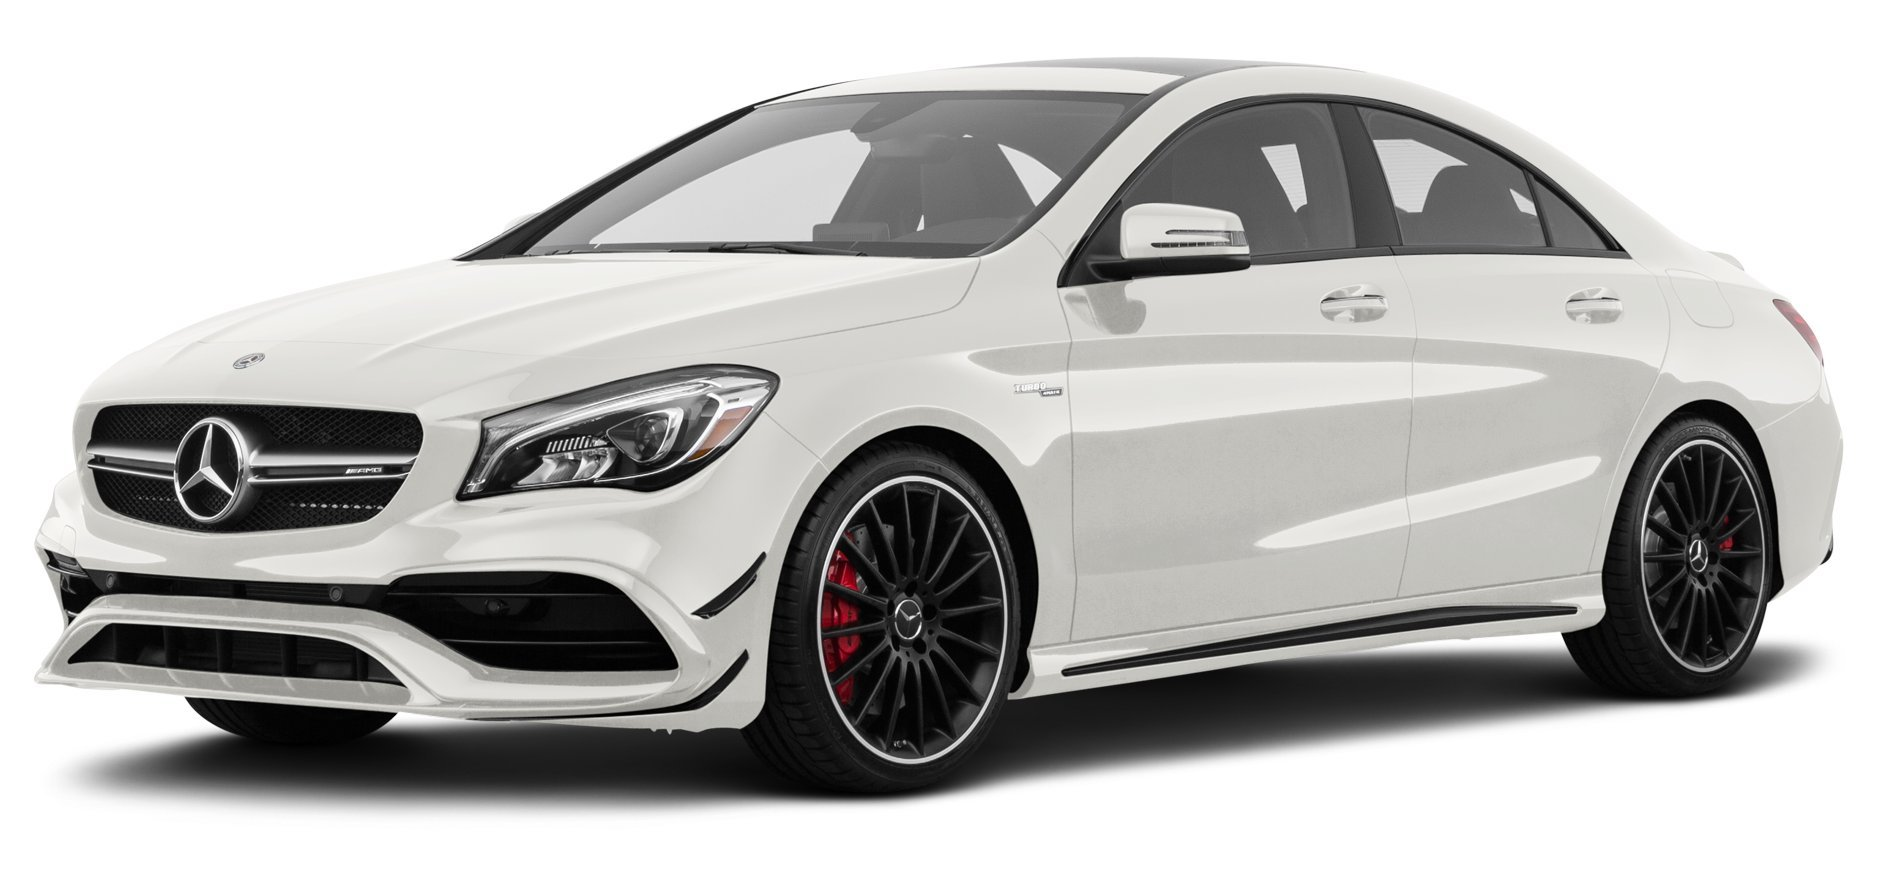 2018 Mercedes-Benz CLA45 AMG, 4MATIC Coupe ...